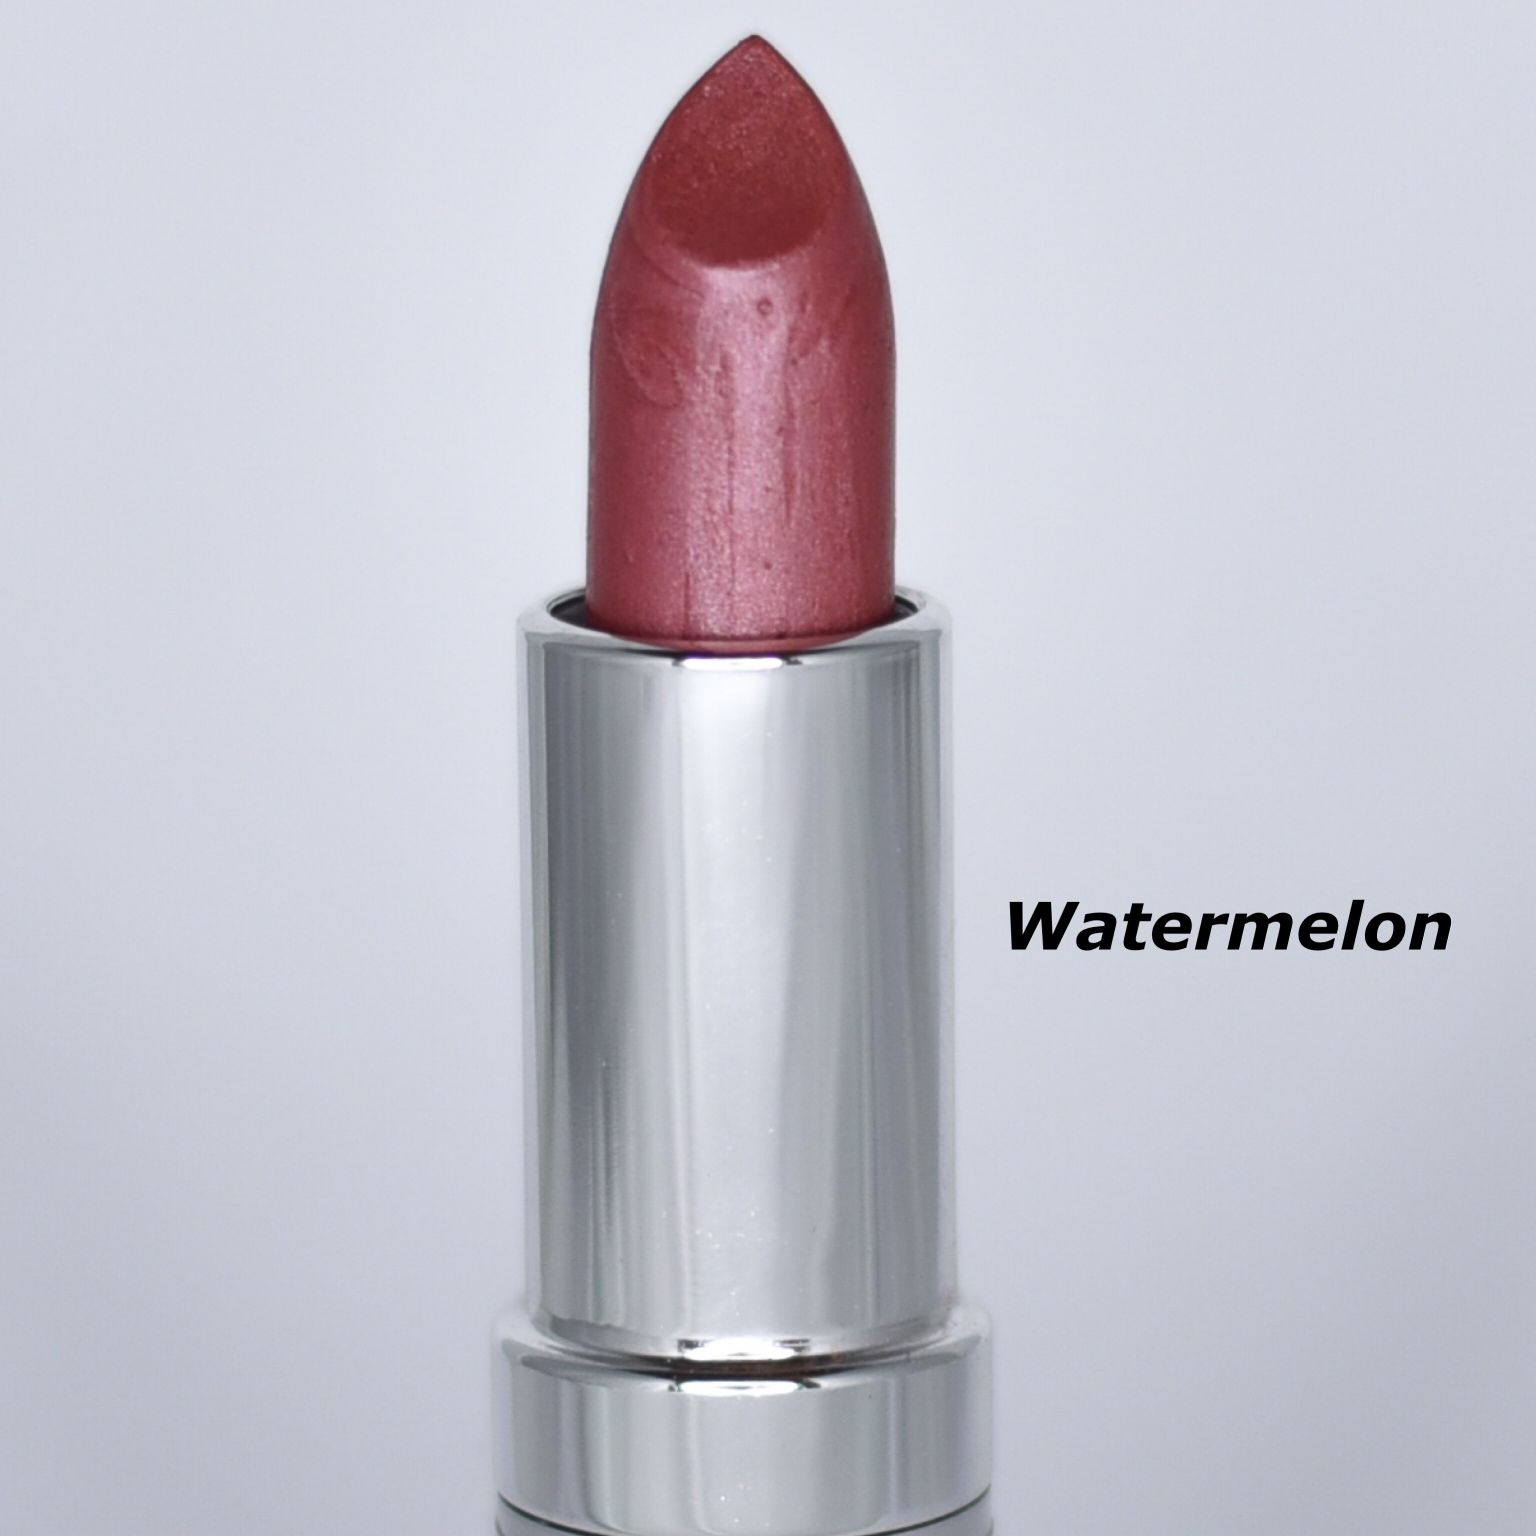 watermelon lipstick